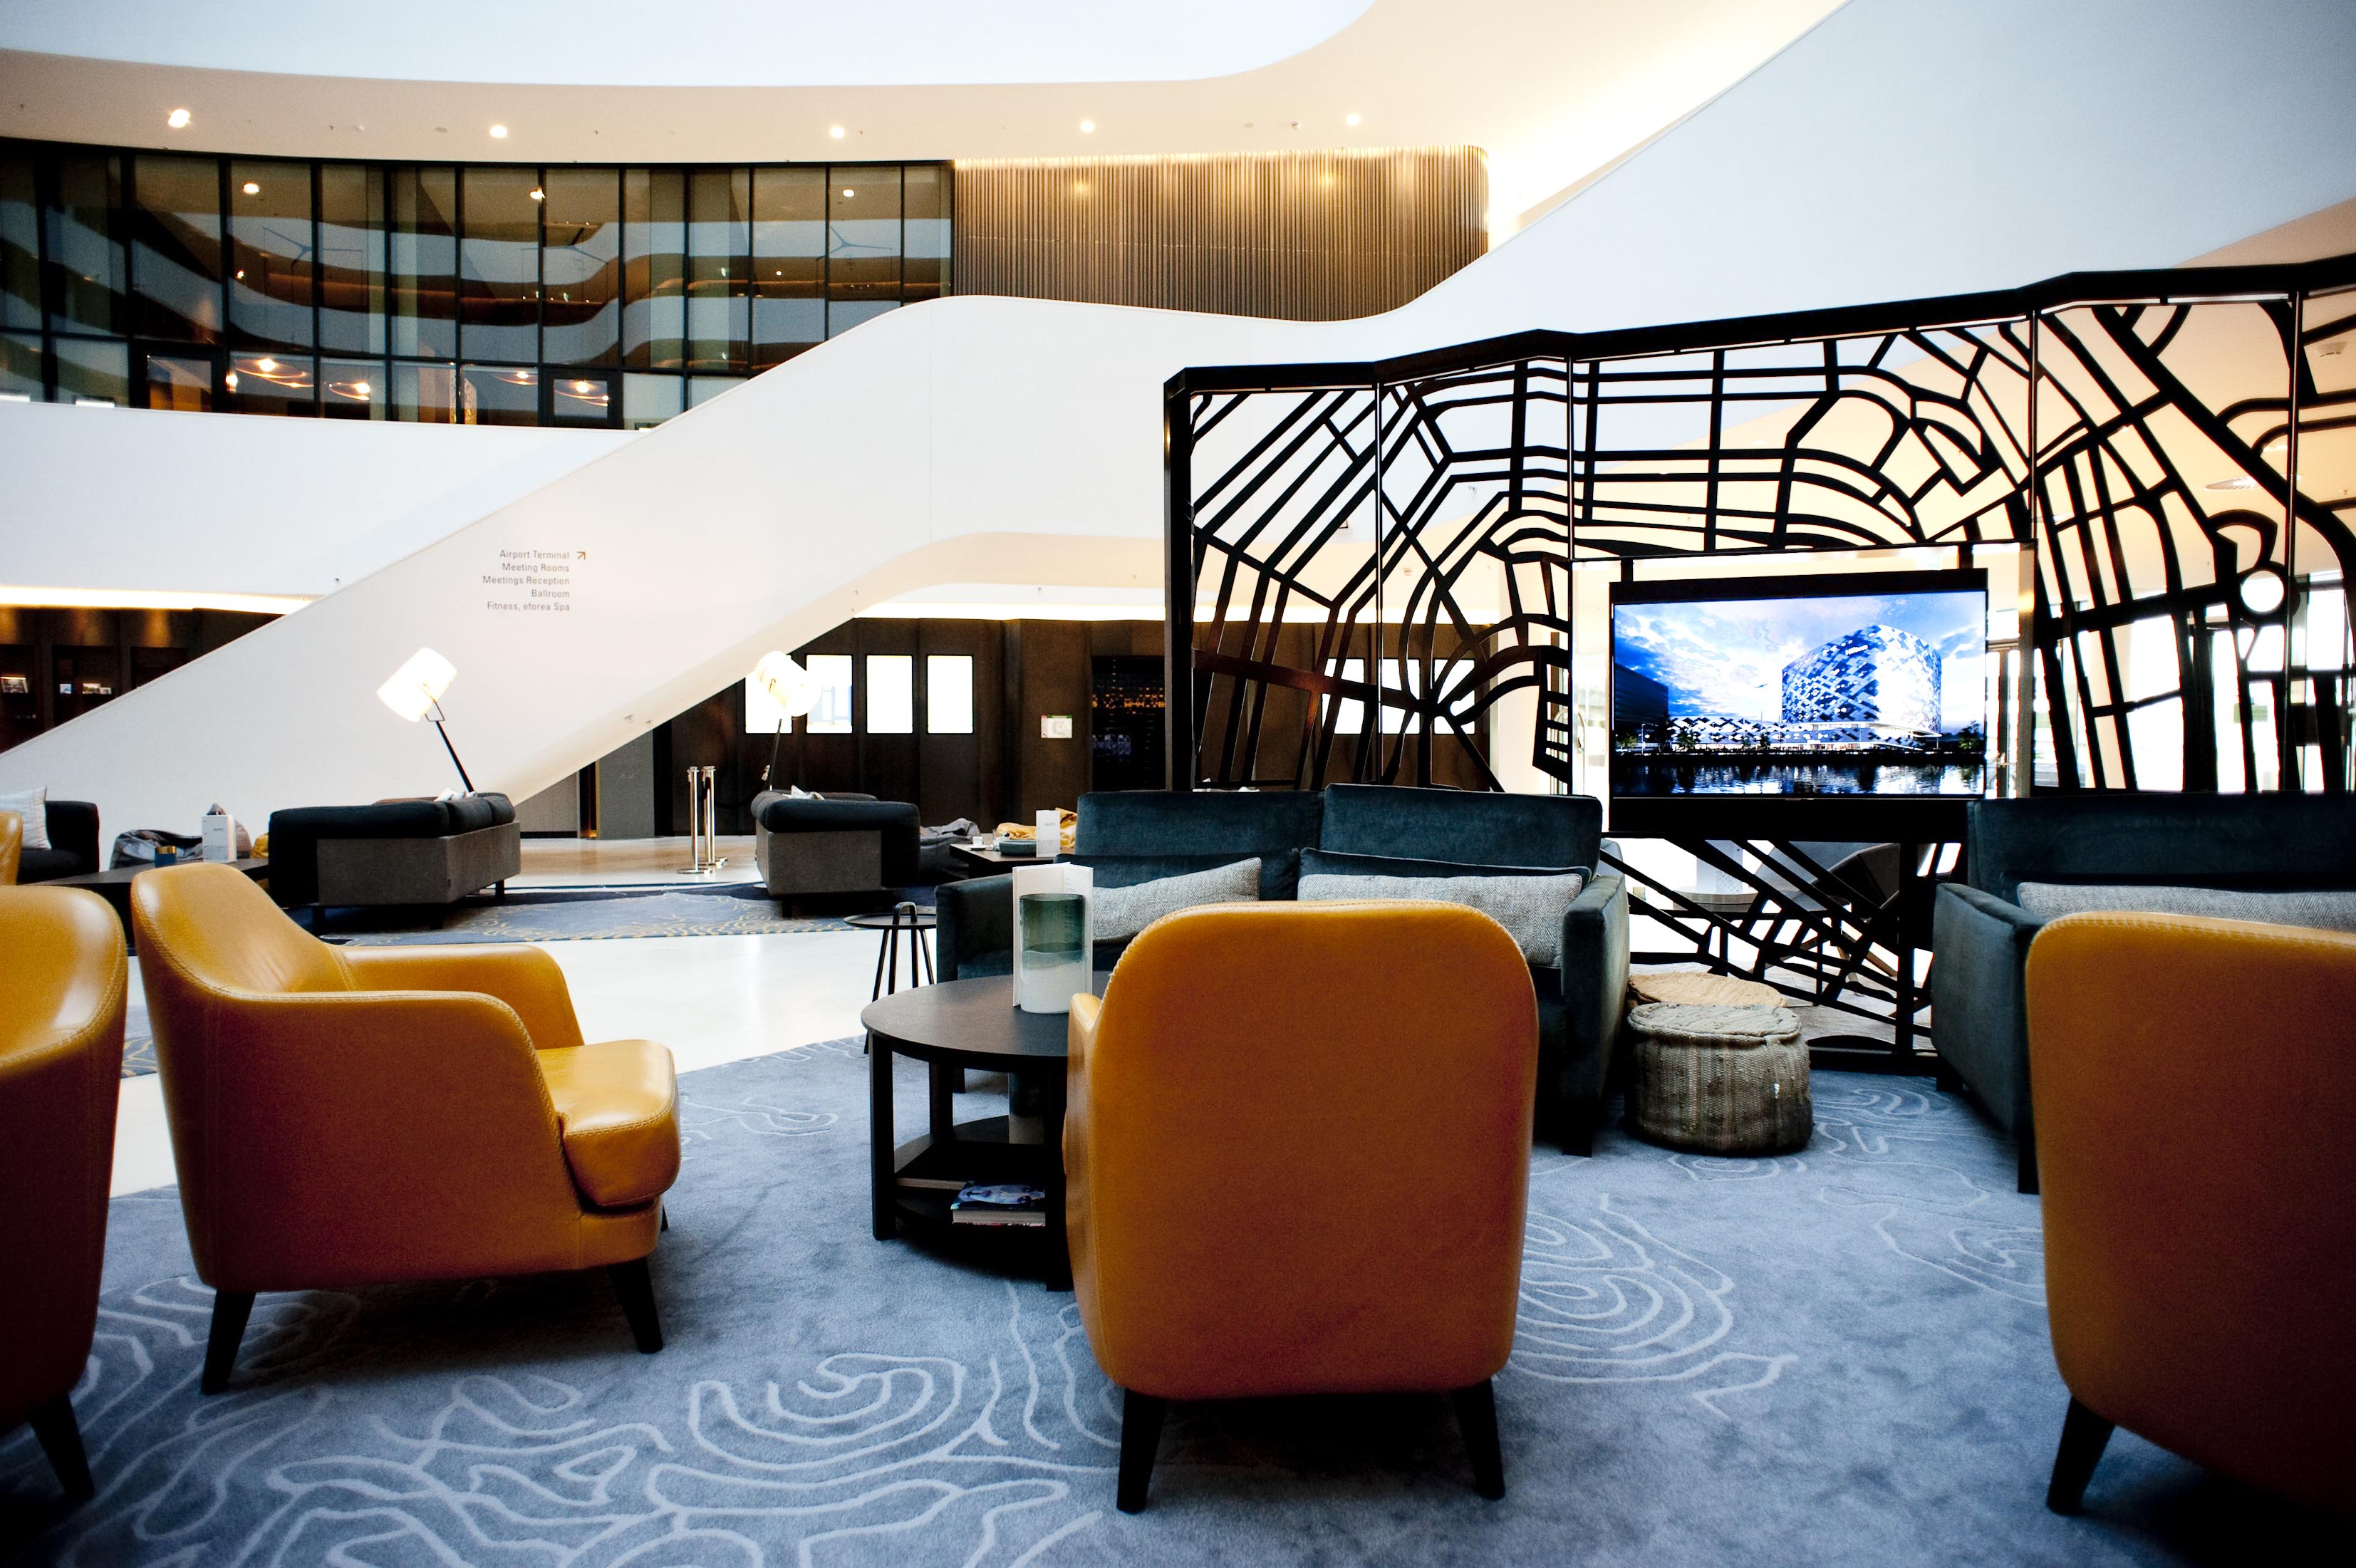 Hilton Airport Schiphol Lobby 11-2